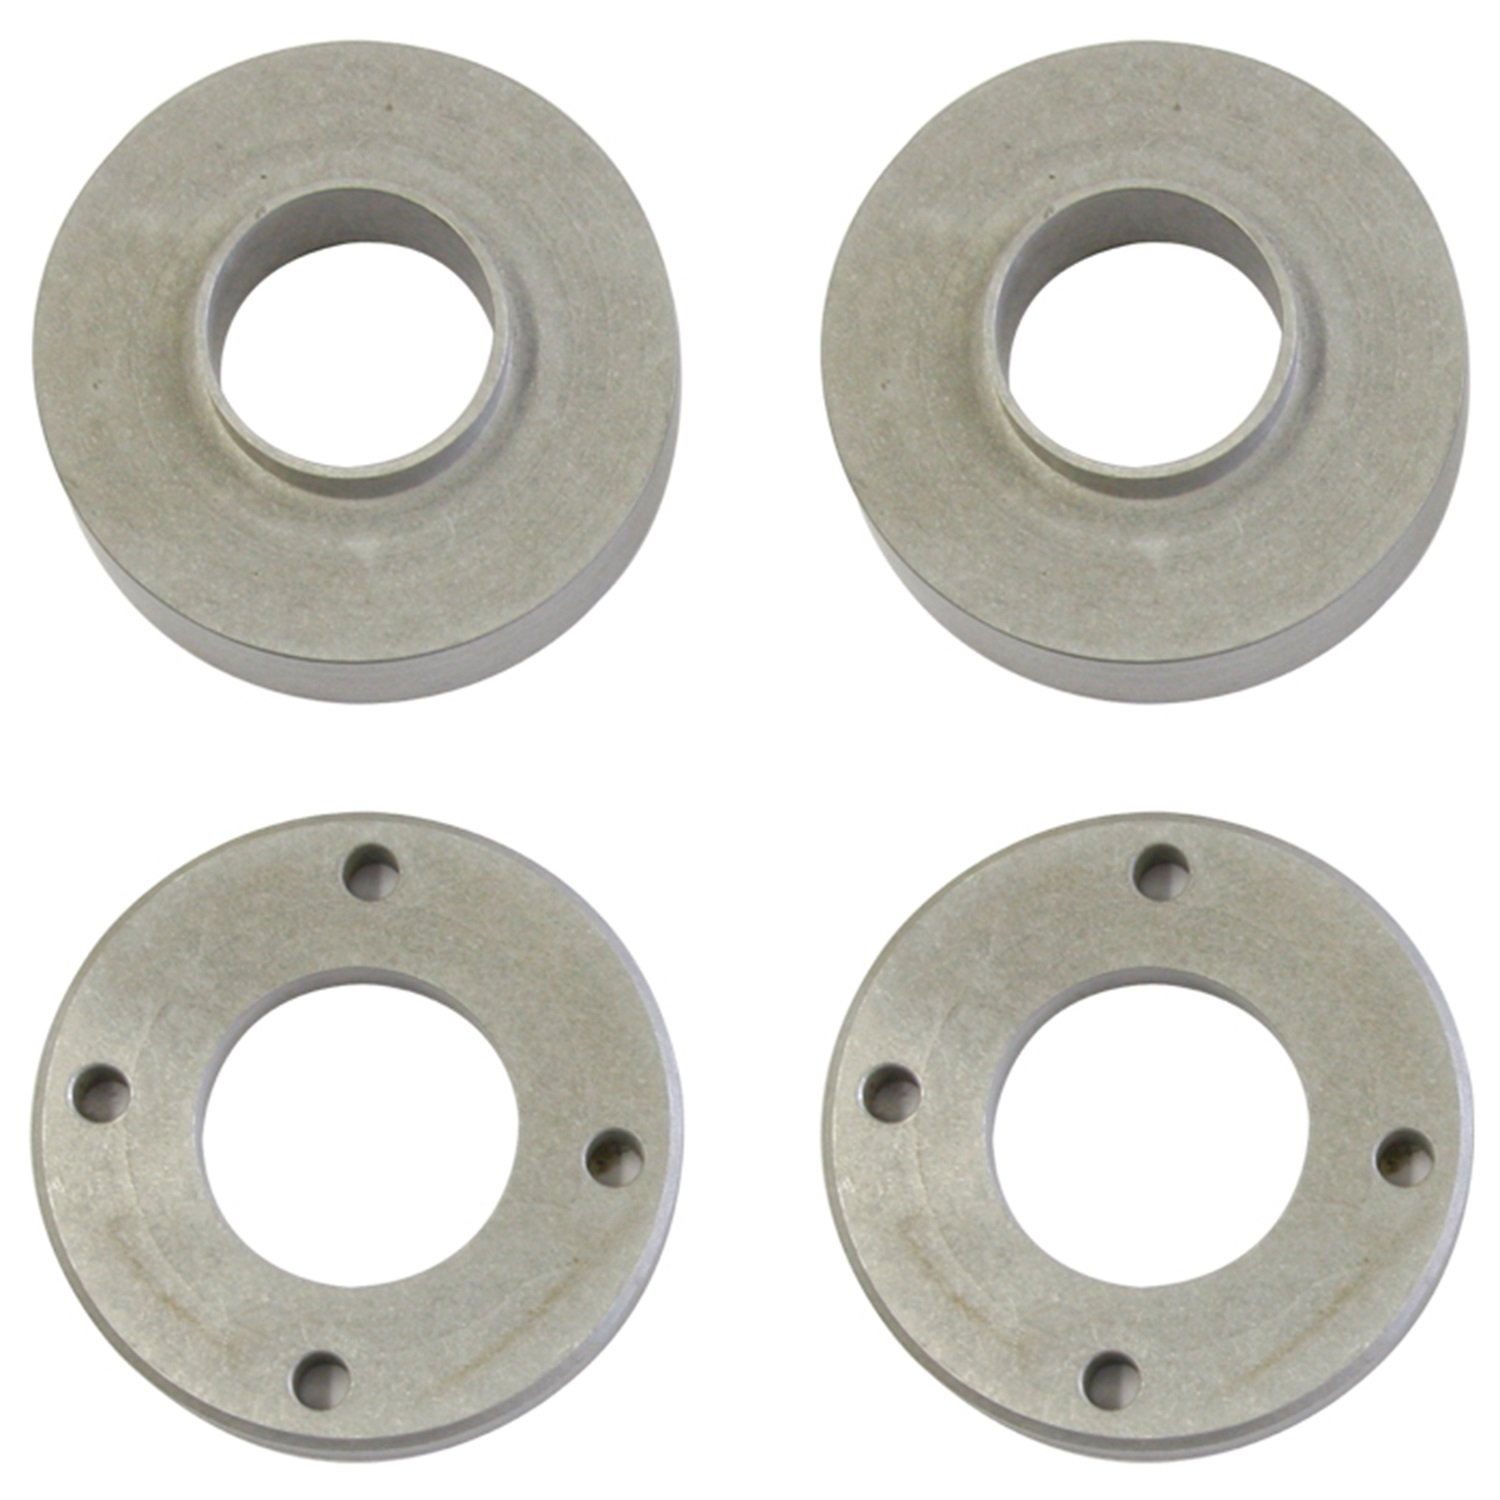 Performance Accessories Toyota Tundra 2WD and 4WD Coil Spacer 2.5 Leveling Kit PATL223PA fits 2007 to 2016 Made in America